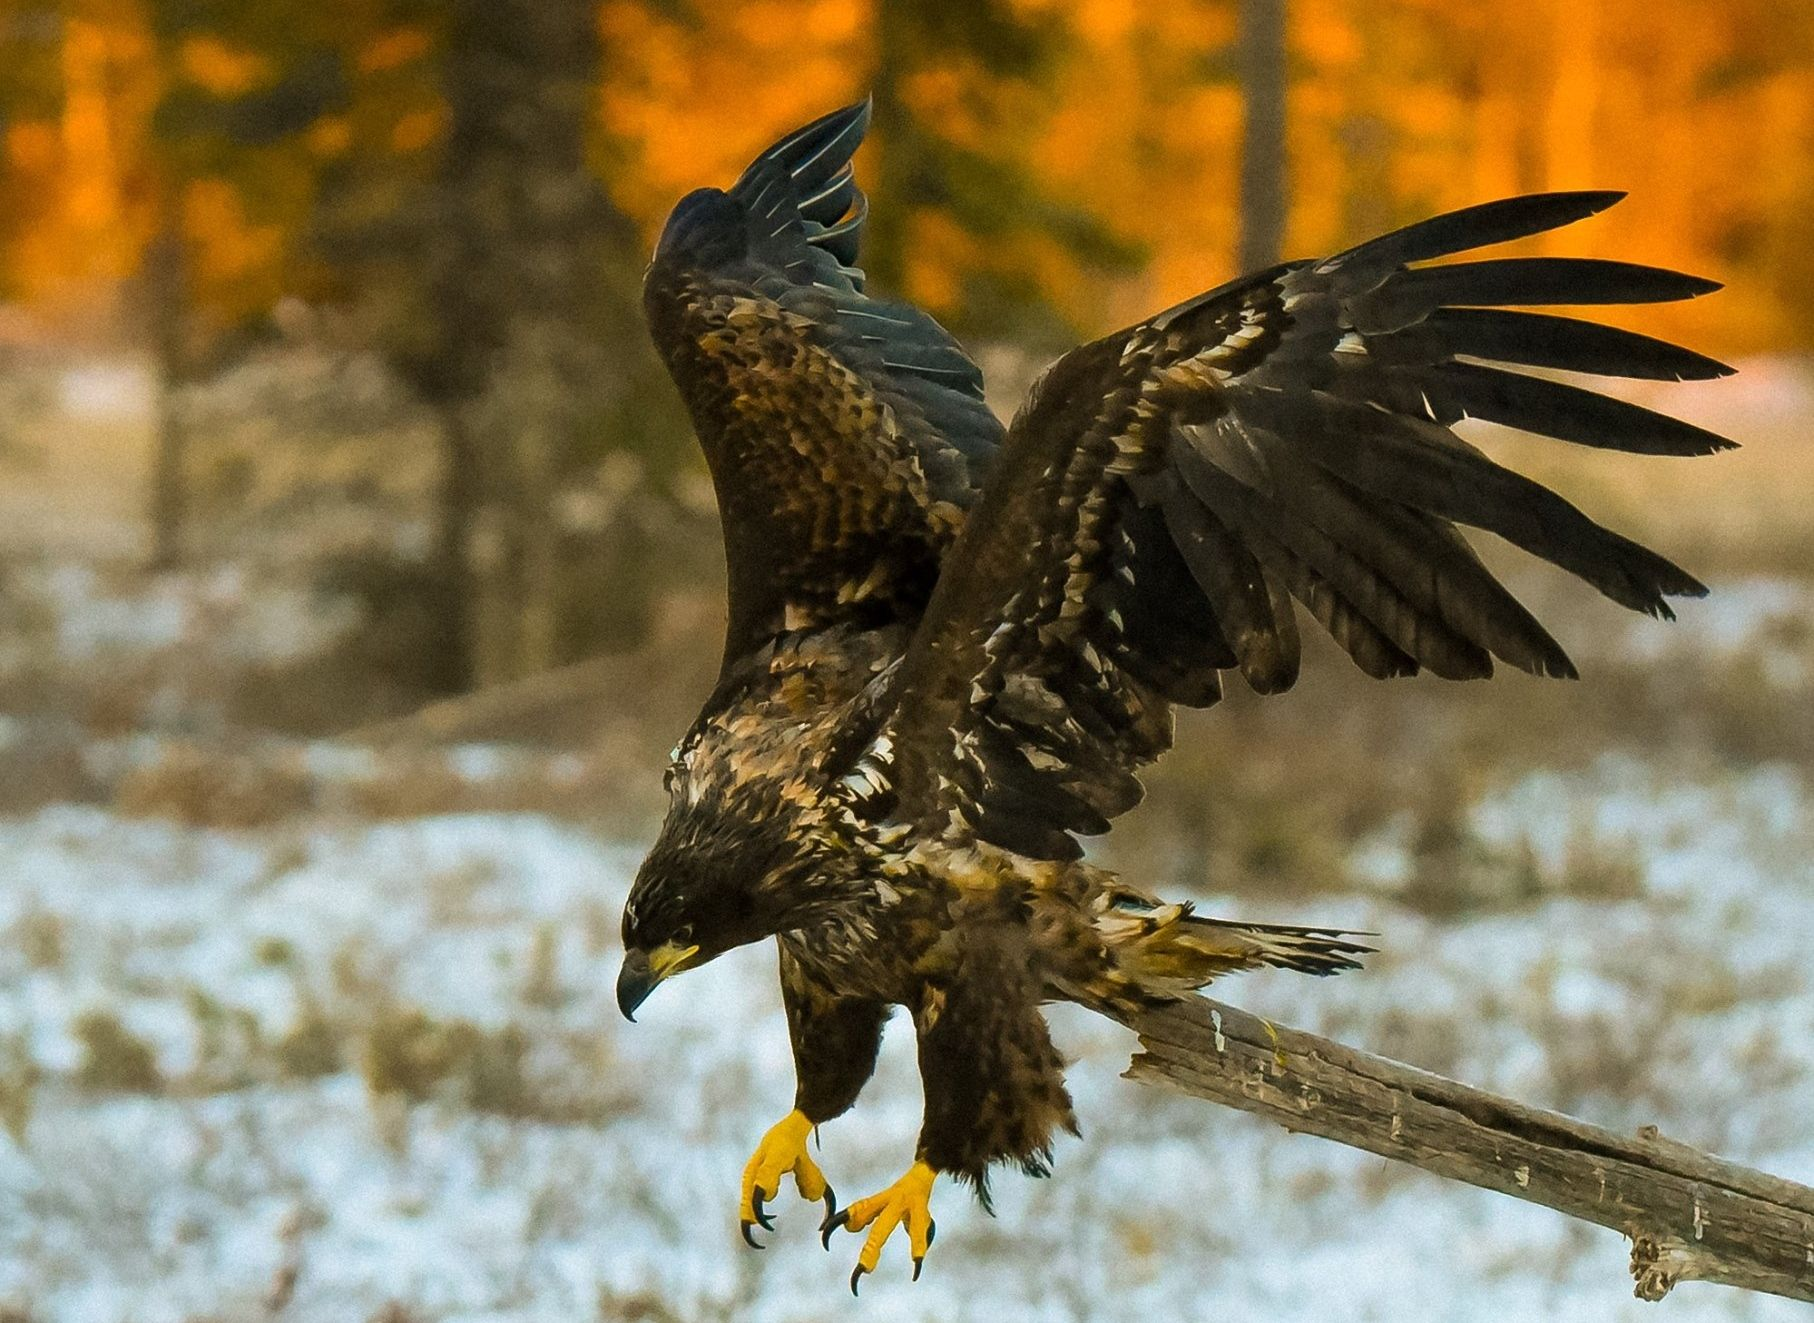 A young white tailed eagle